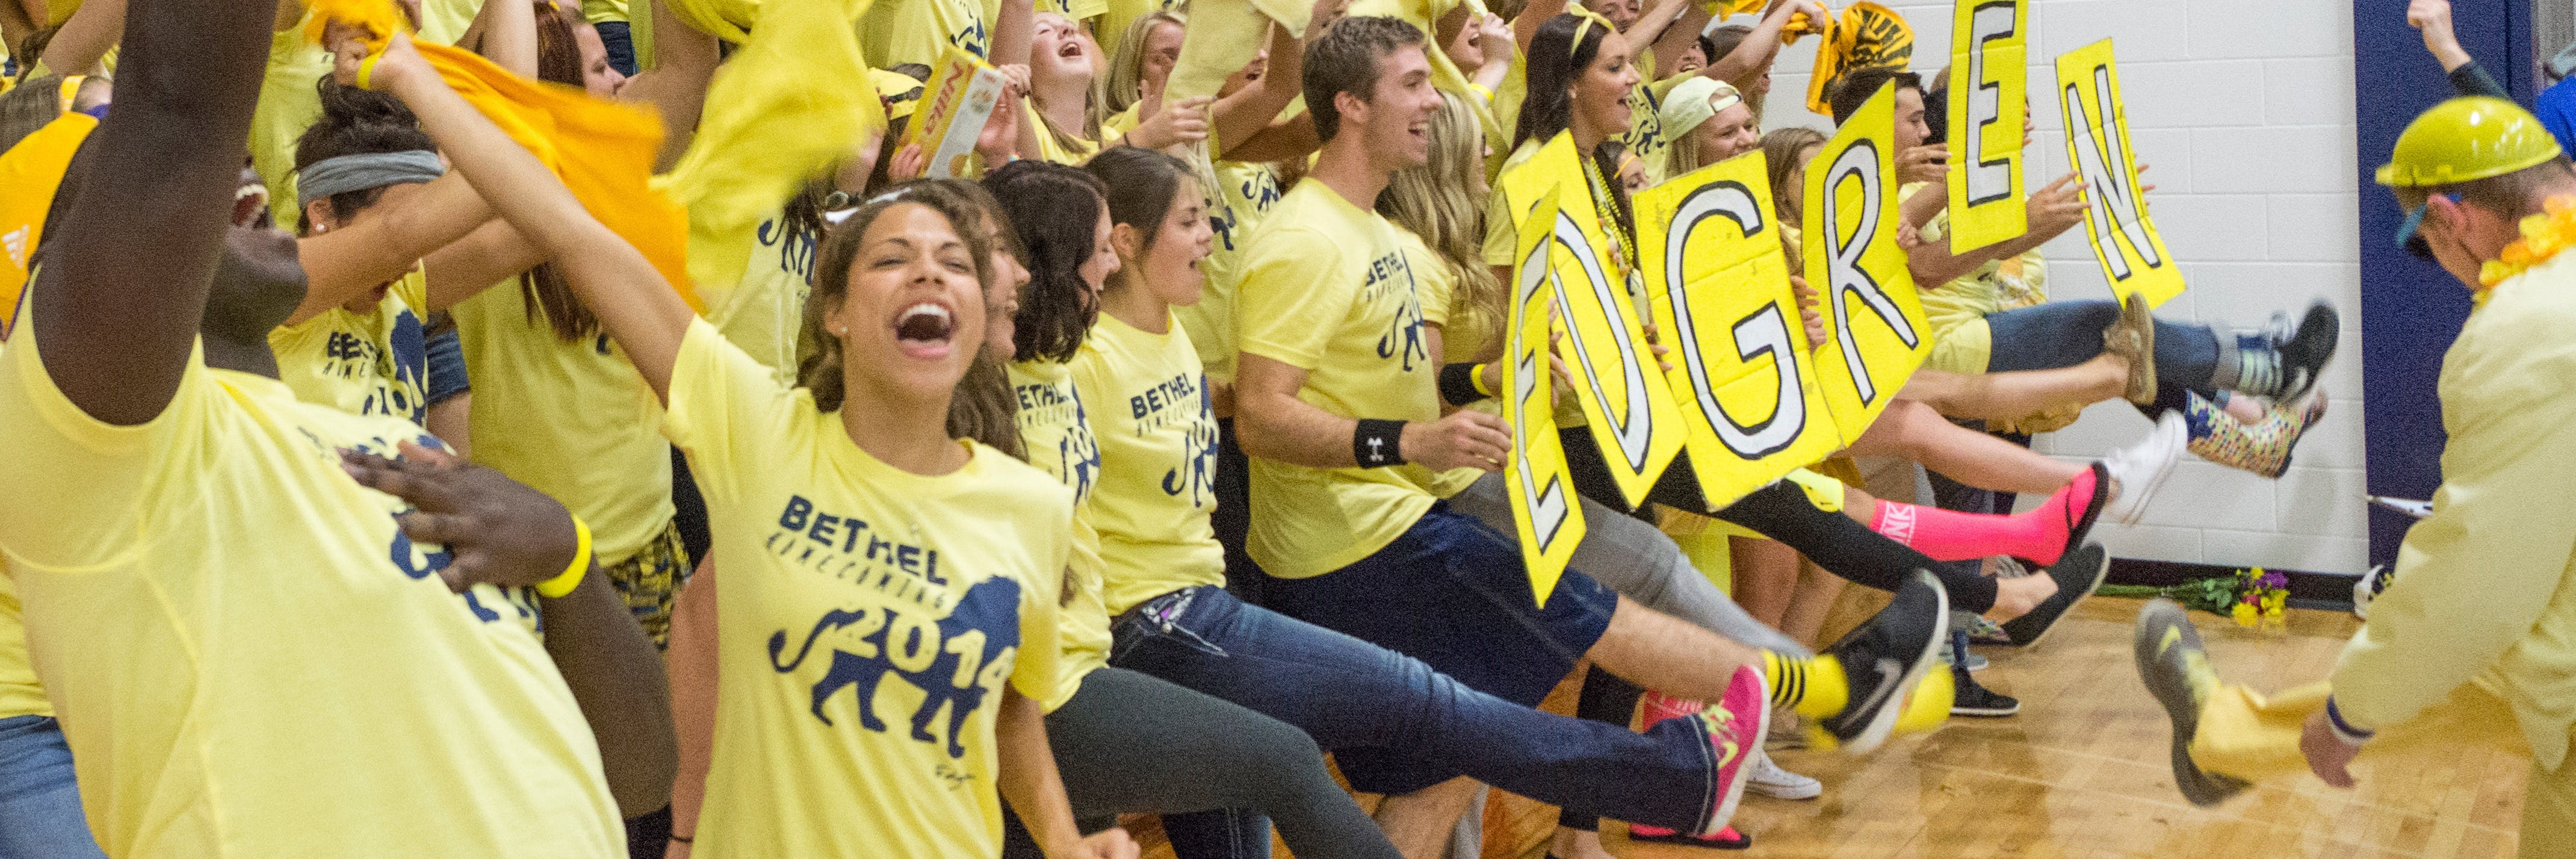 Students competing in the annual homecoming cheer